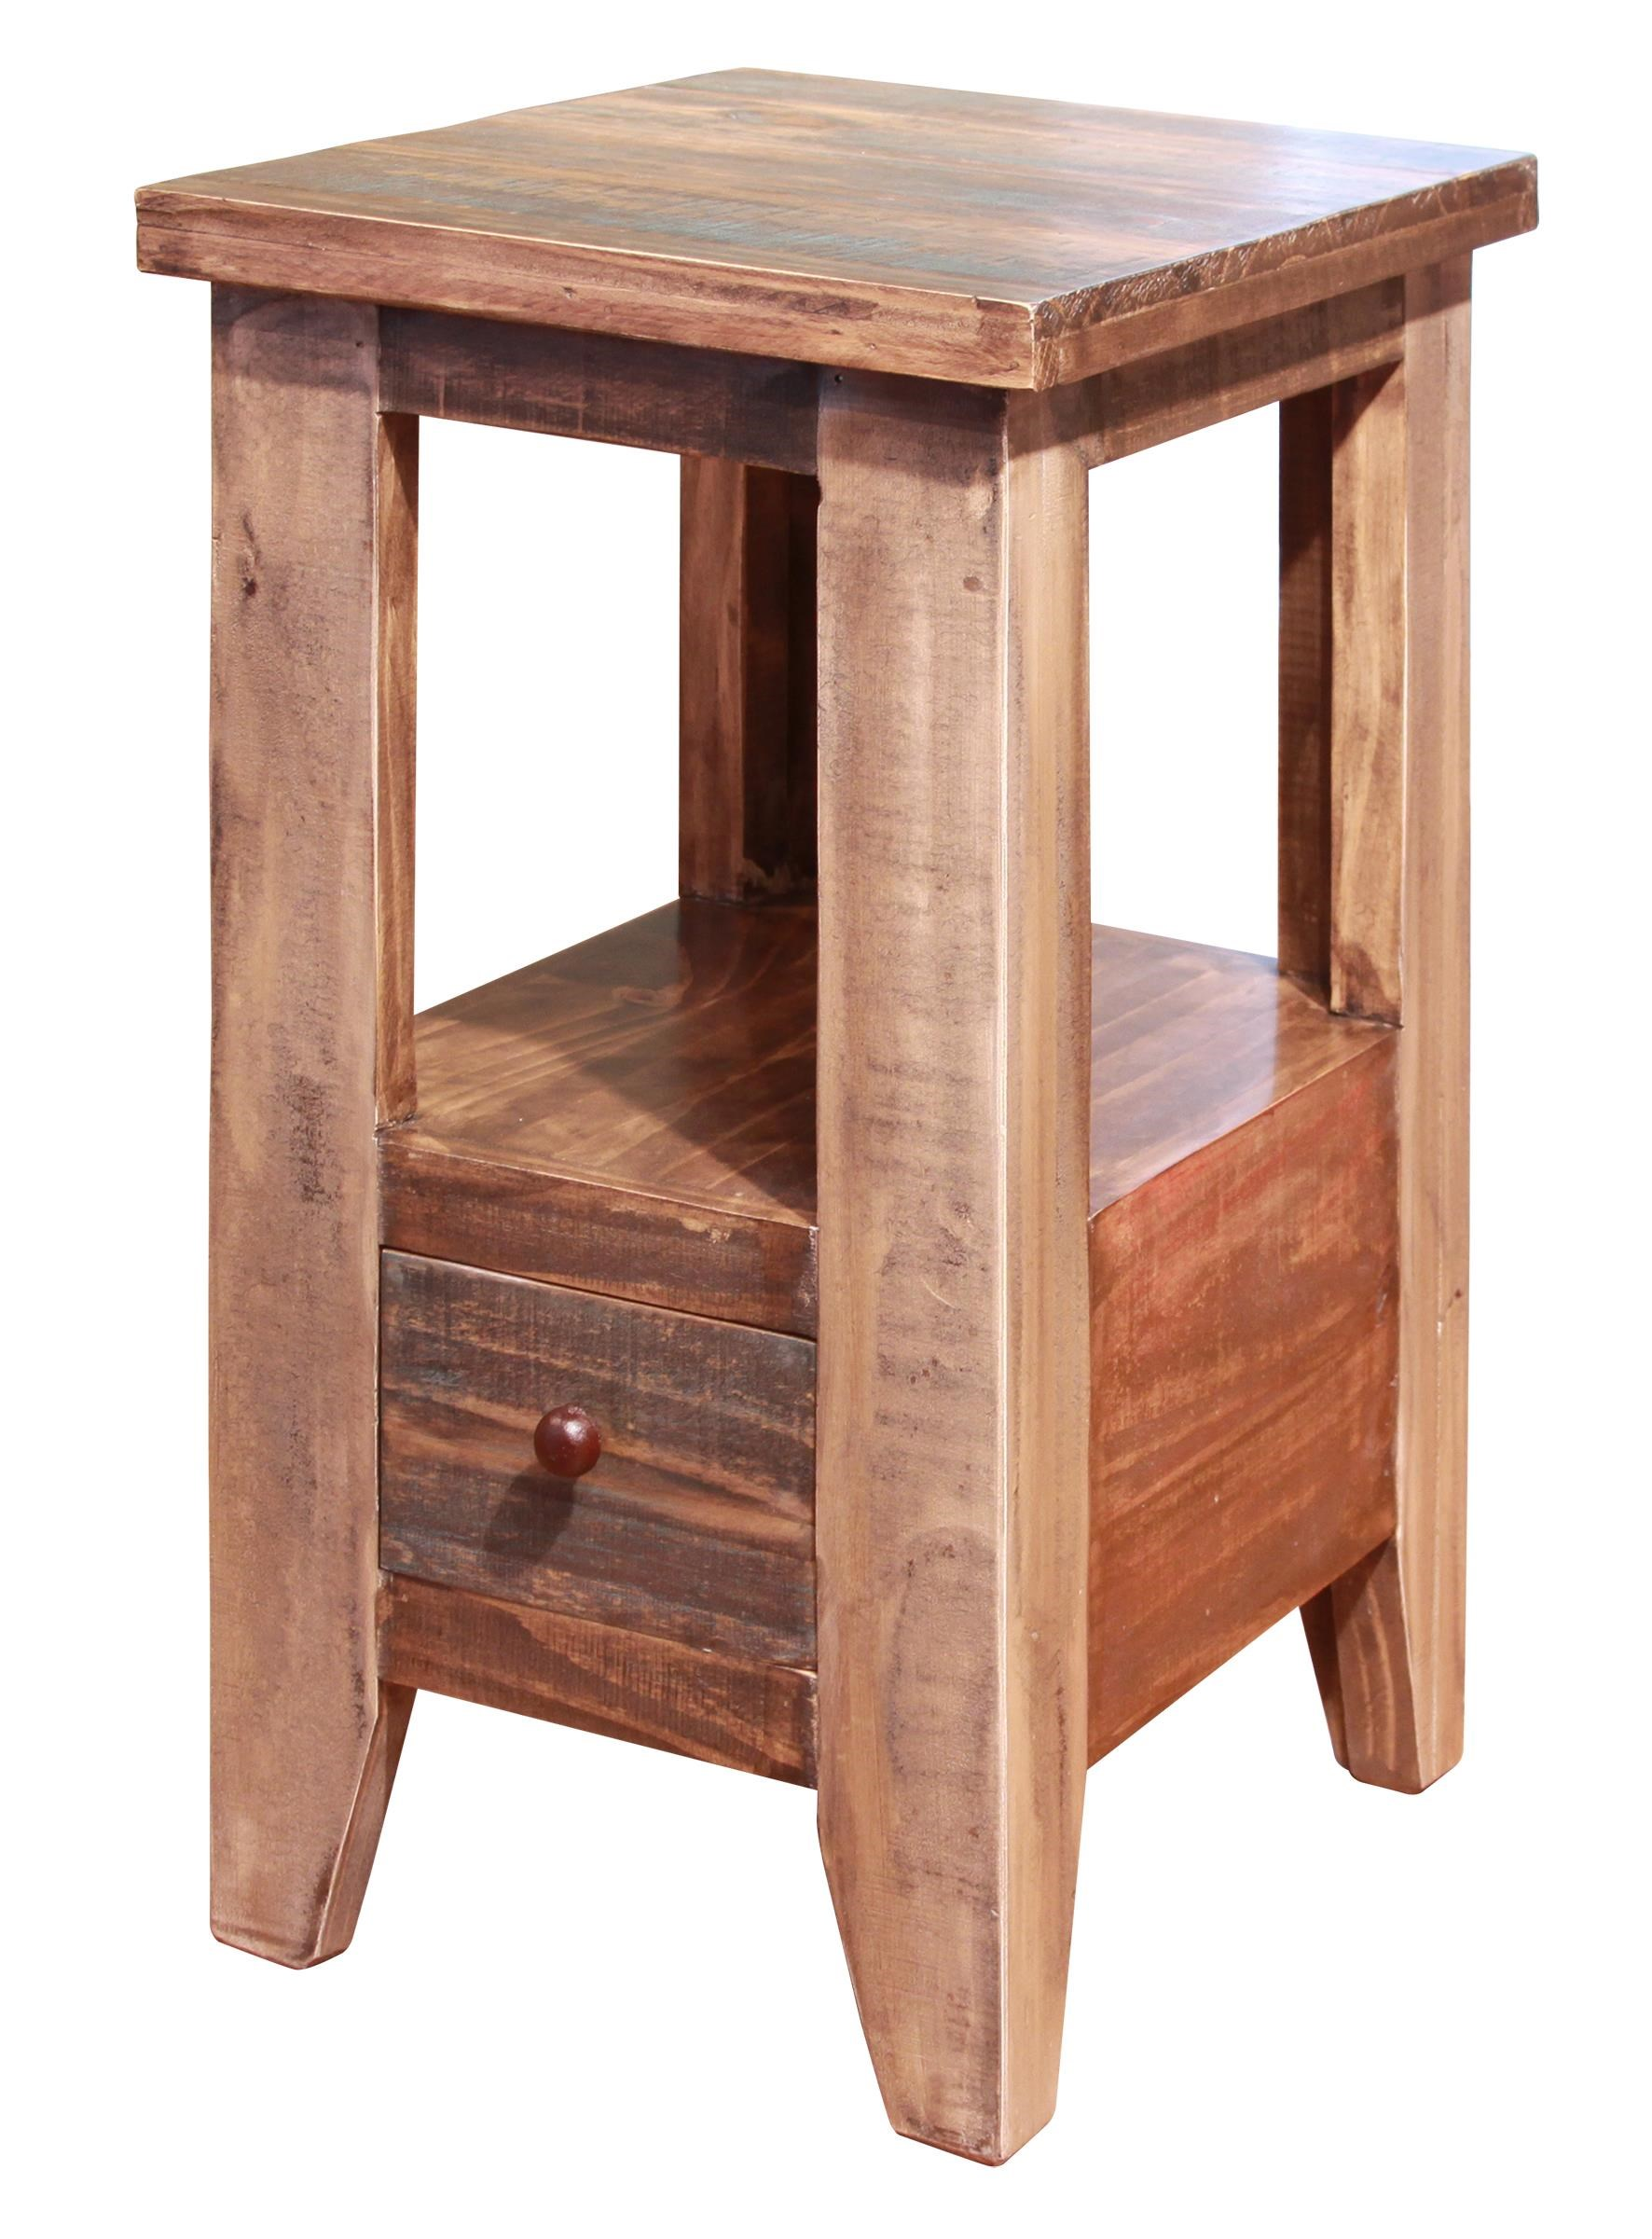 Chair Side Table with 1 Drawer